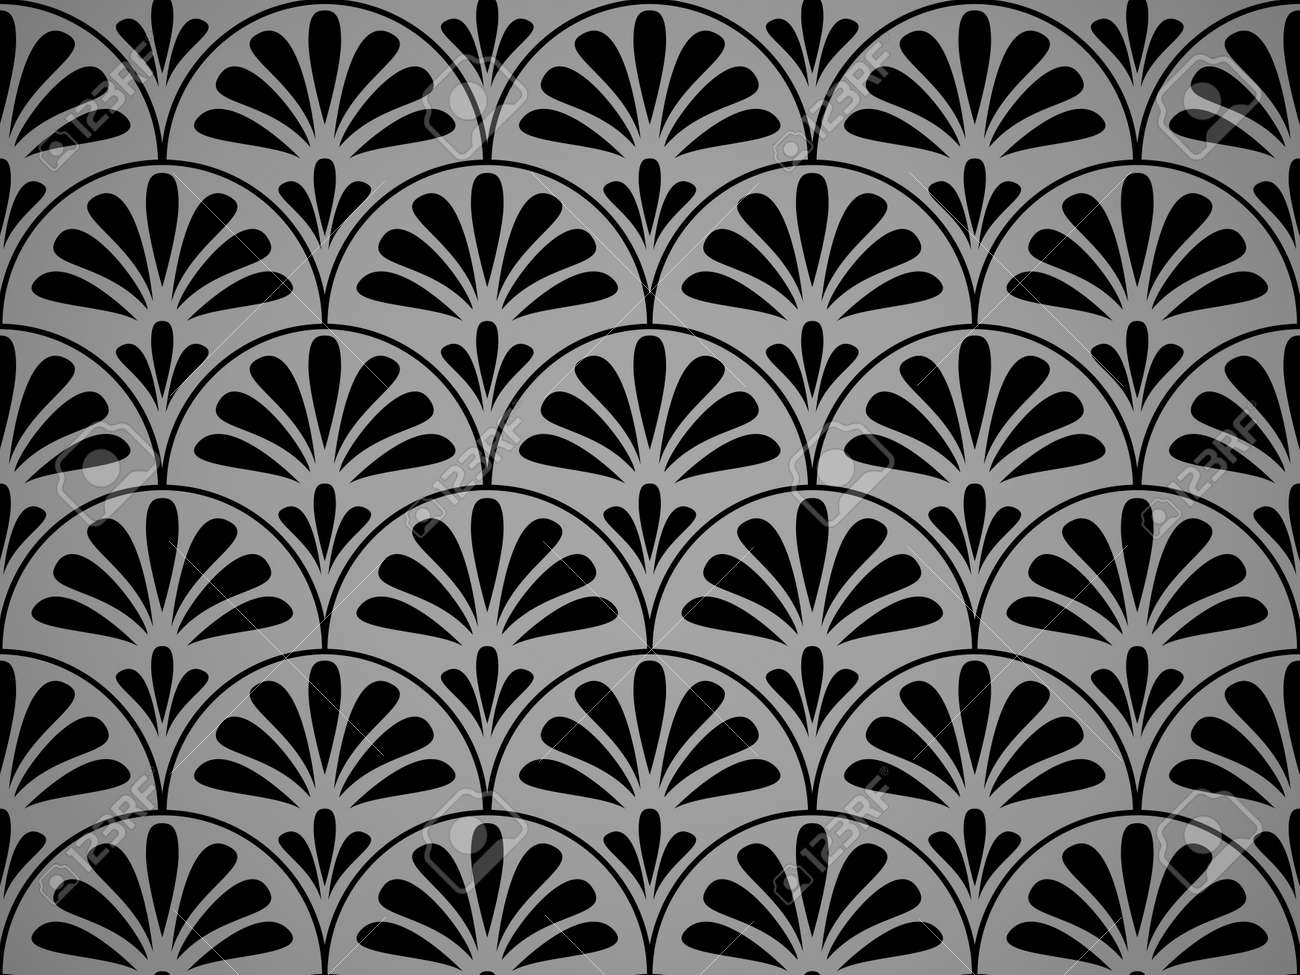 Flower geometric pattern. Seamless vector background. Black and gray ornament. Ornament for fabric, wallpaper, packaging. Decorative print - 169878908